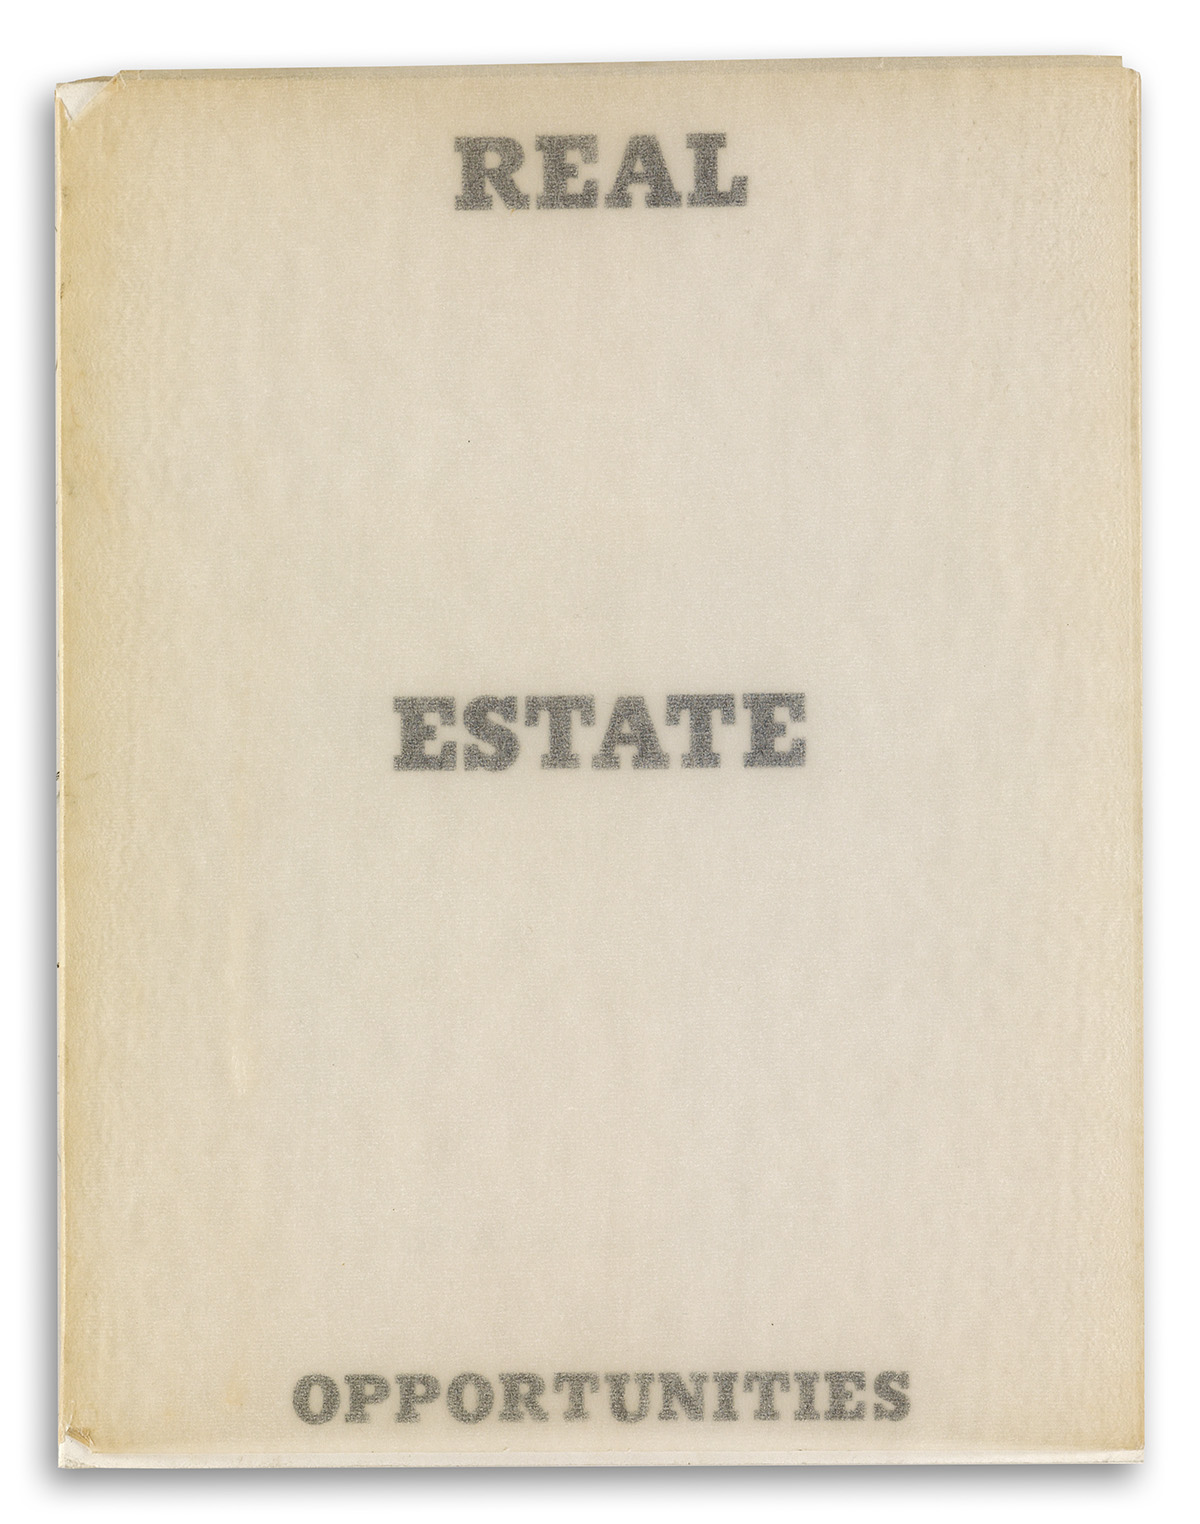 EDWARD-RUSCHA-Nine-Swimming-Pools-and-Broken-Glass--Real-Estate-Opportunities